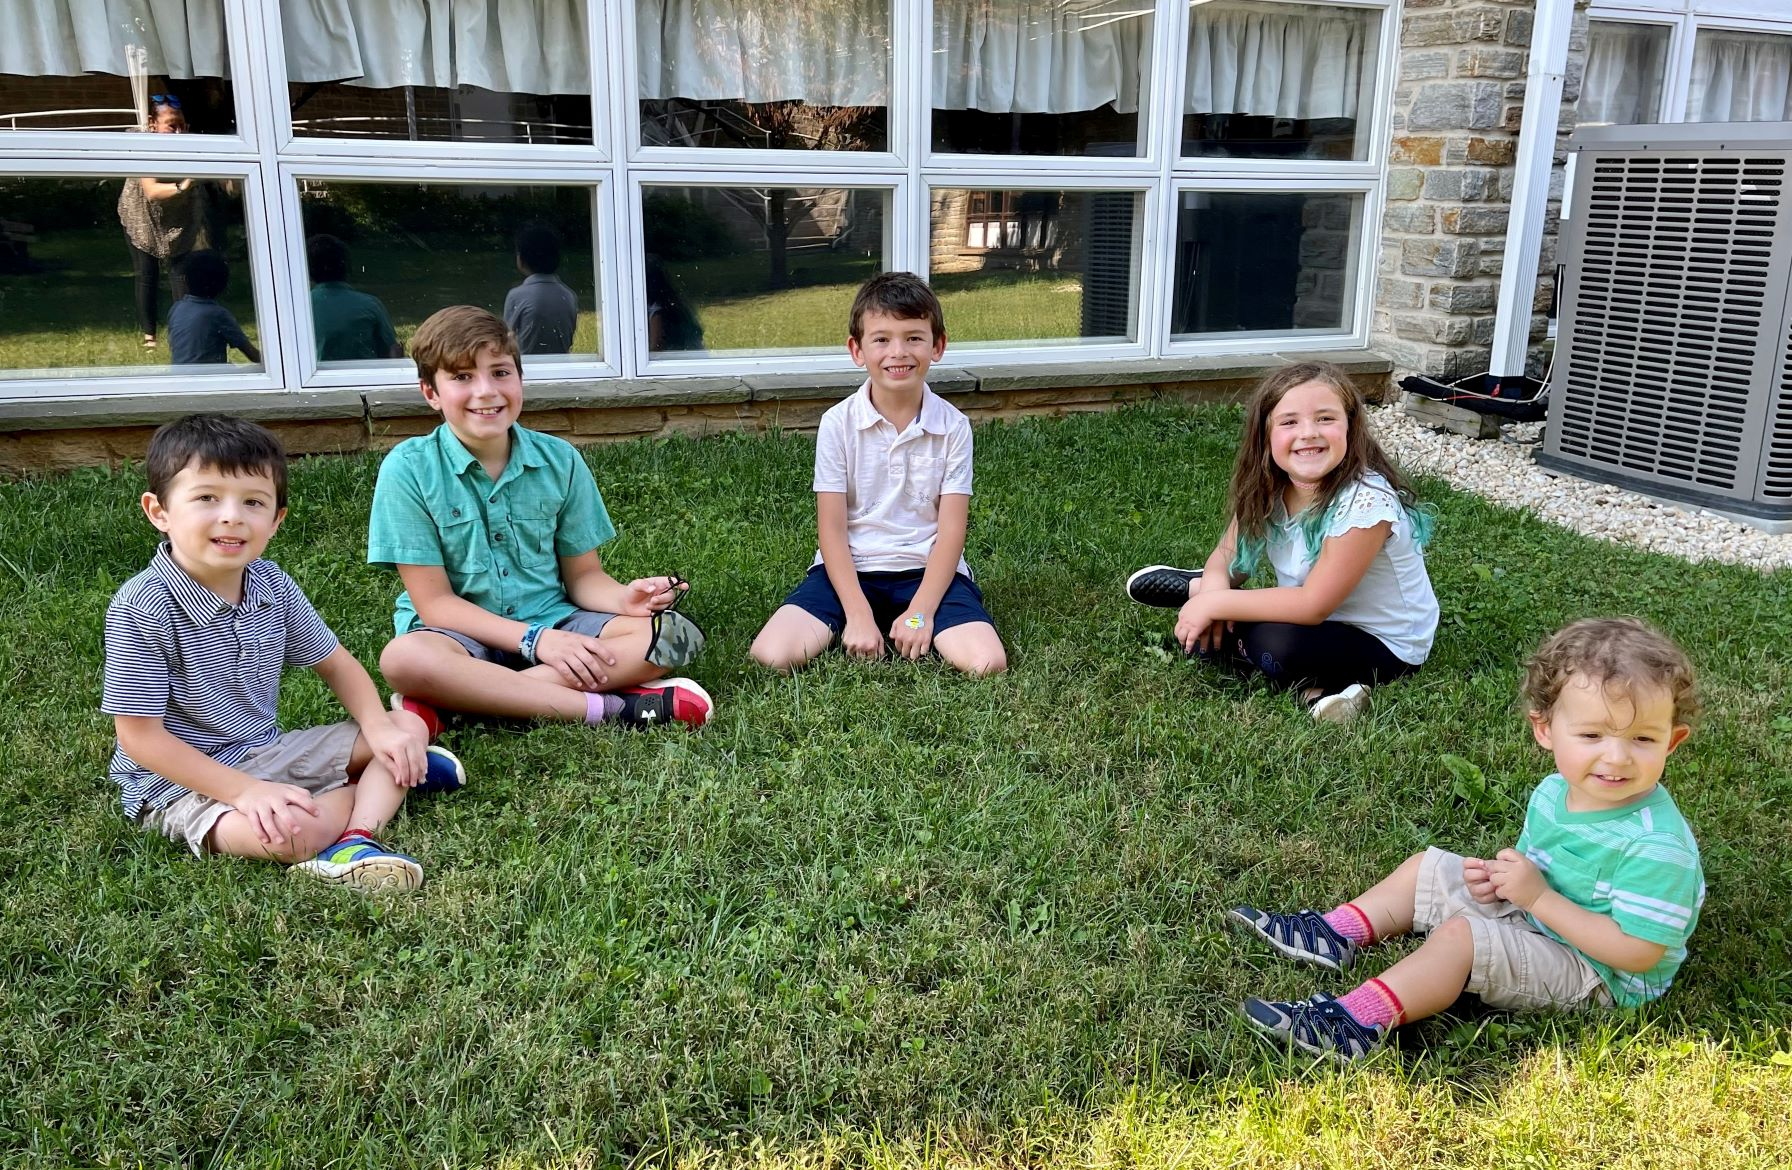 5 children sitting on the grass smiling